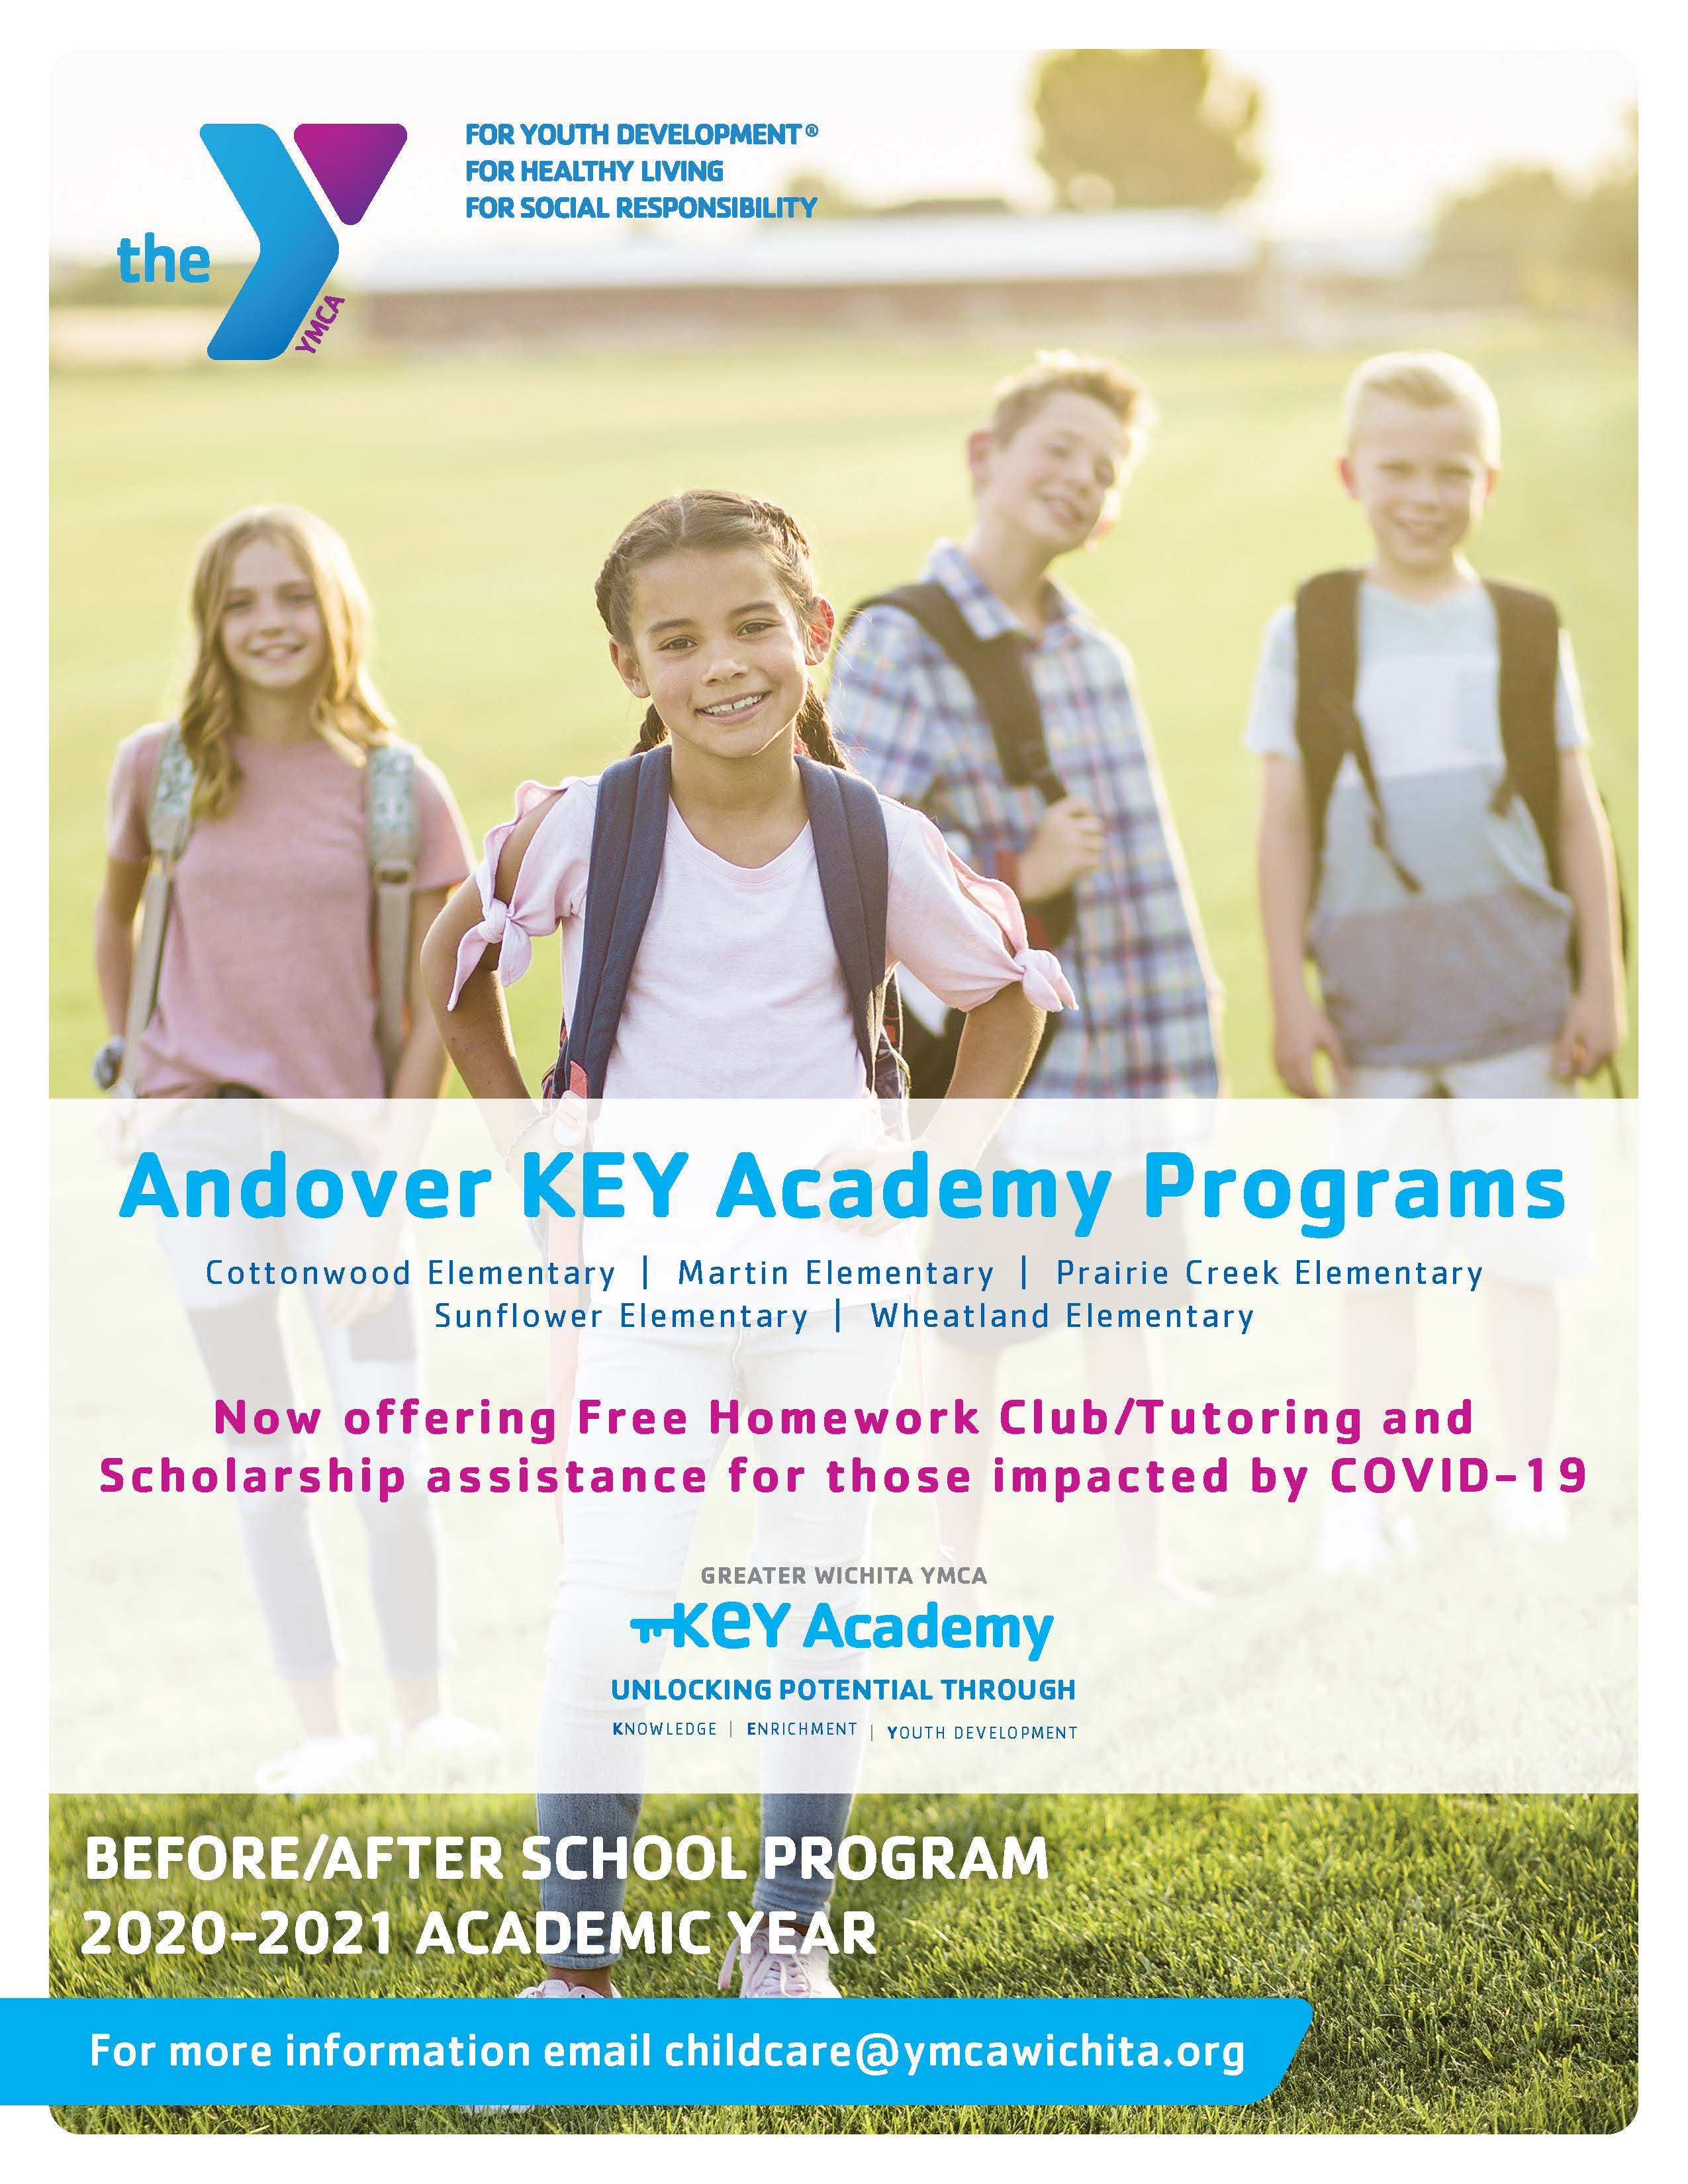 YMCA USD385 KeyAcademy Tutoring for info email childcare@ymcawichita.org